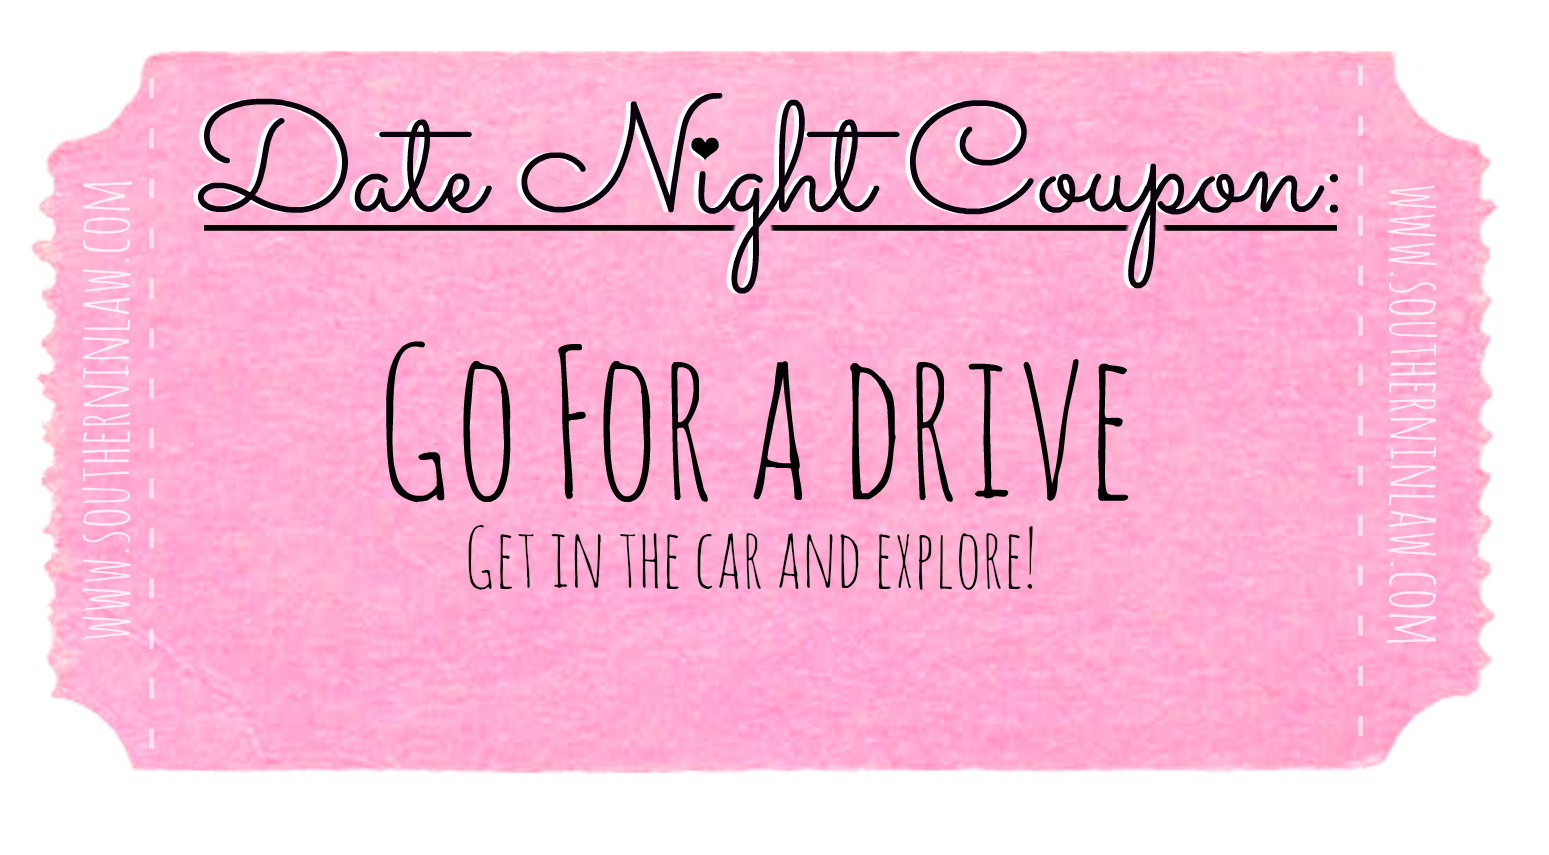 Affordable Date Ideas - Date Night Coupons - Go for a Drive